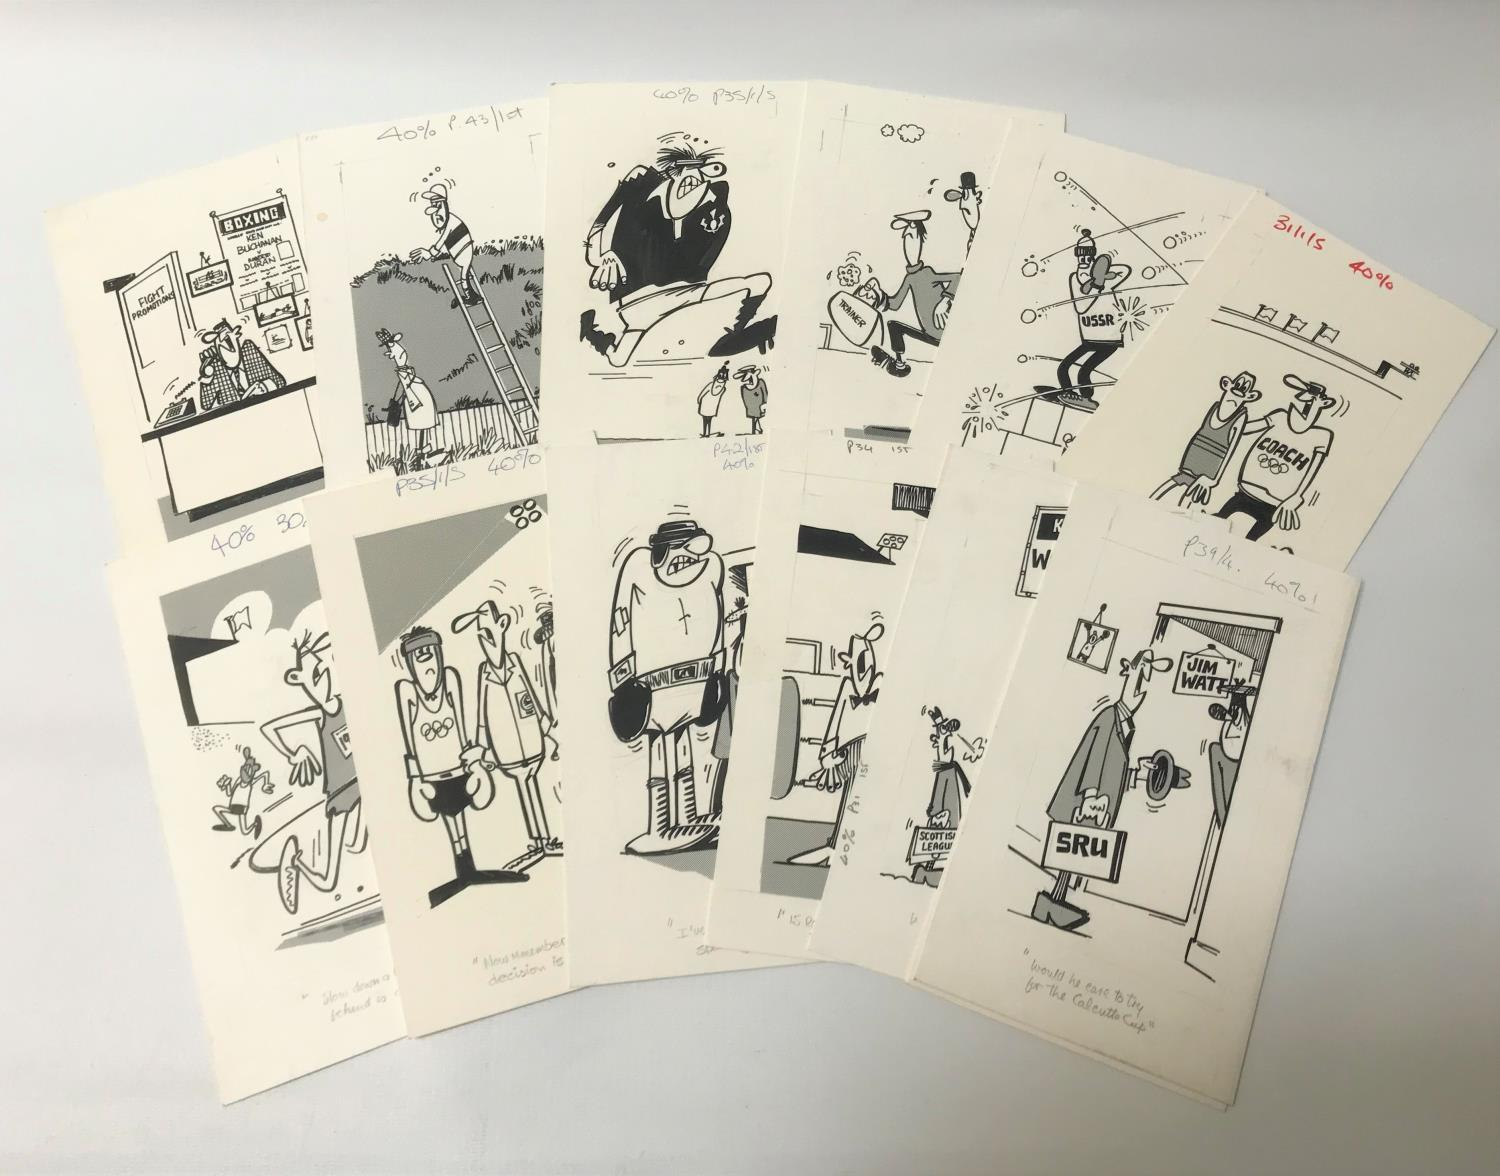 Lot 277 - ROD MCLEOD (Scottish cartoonist) thirteen ink drawings, late 1970/early 1980s, Sports related,